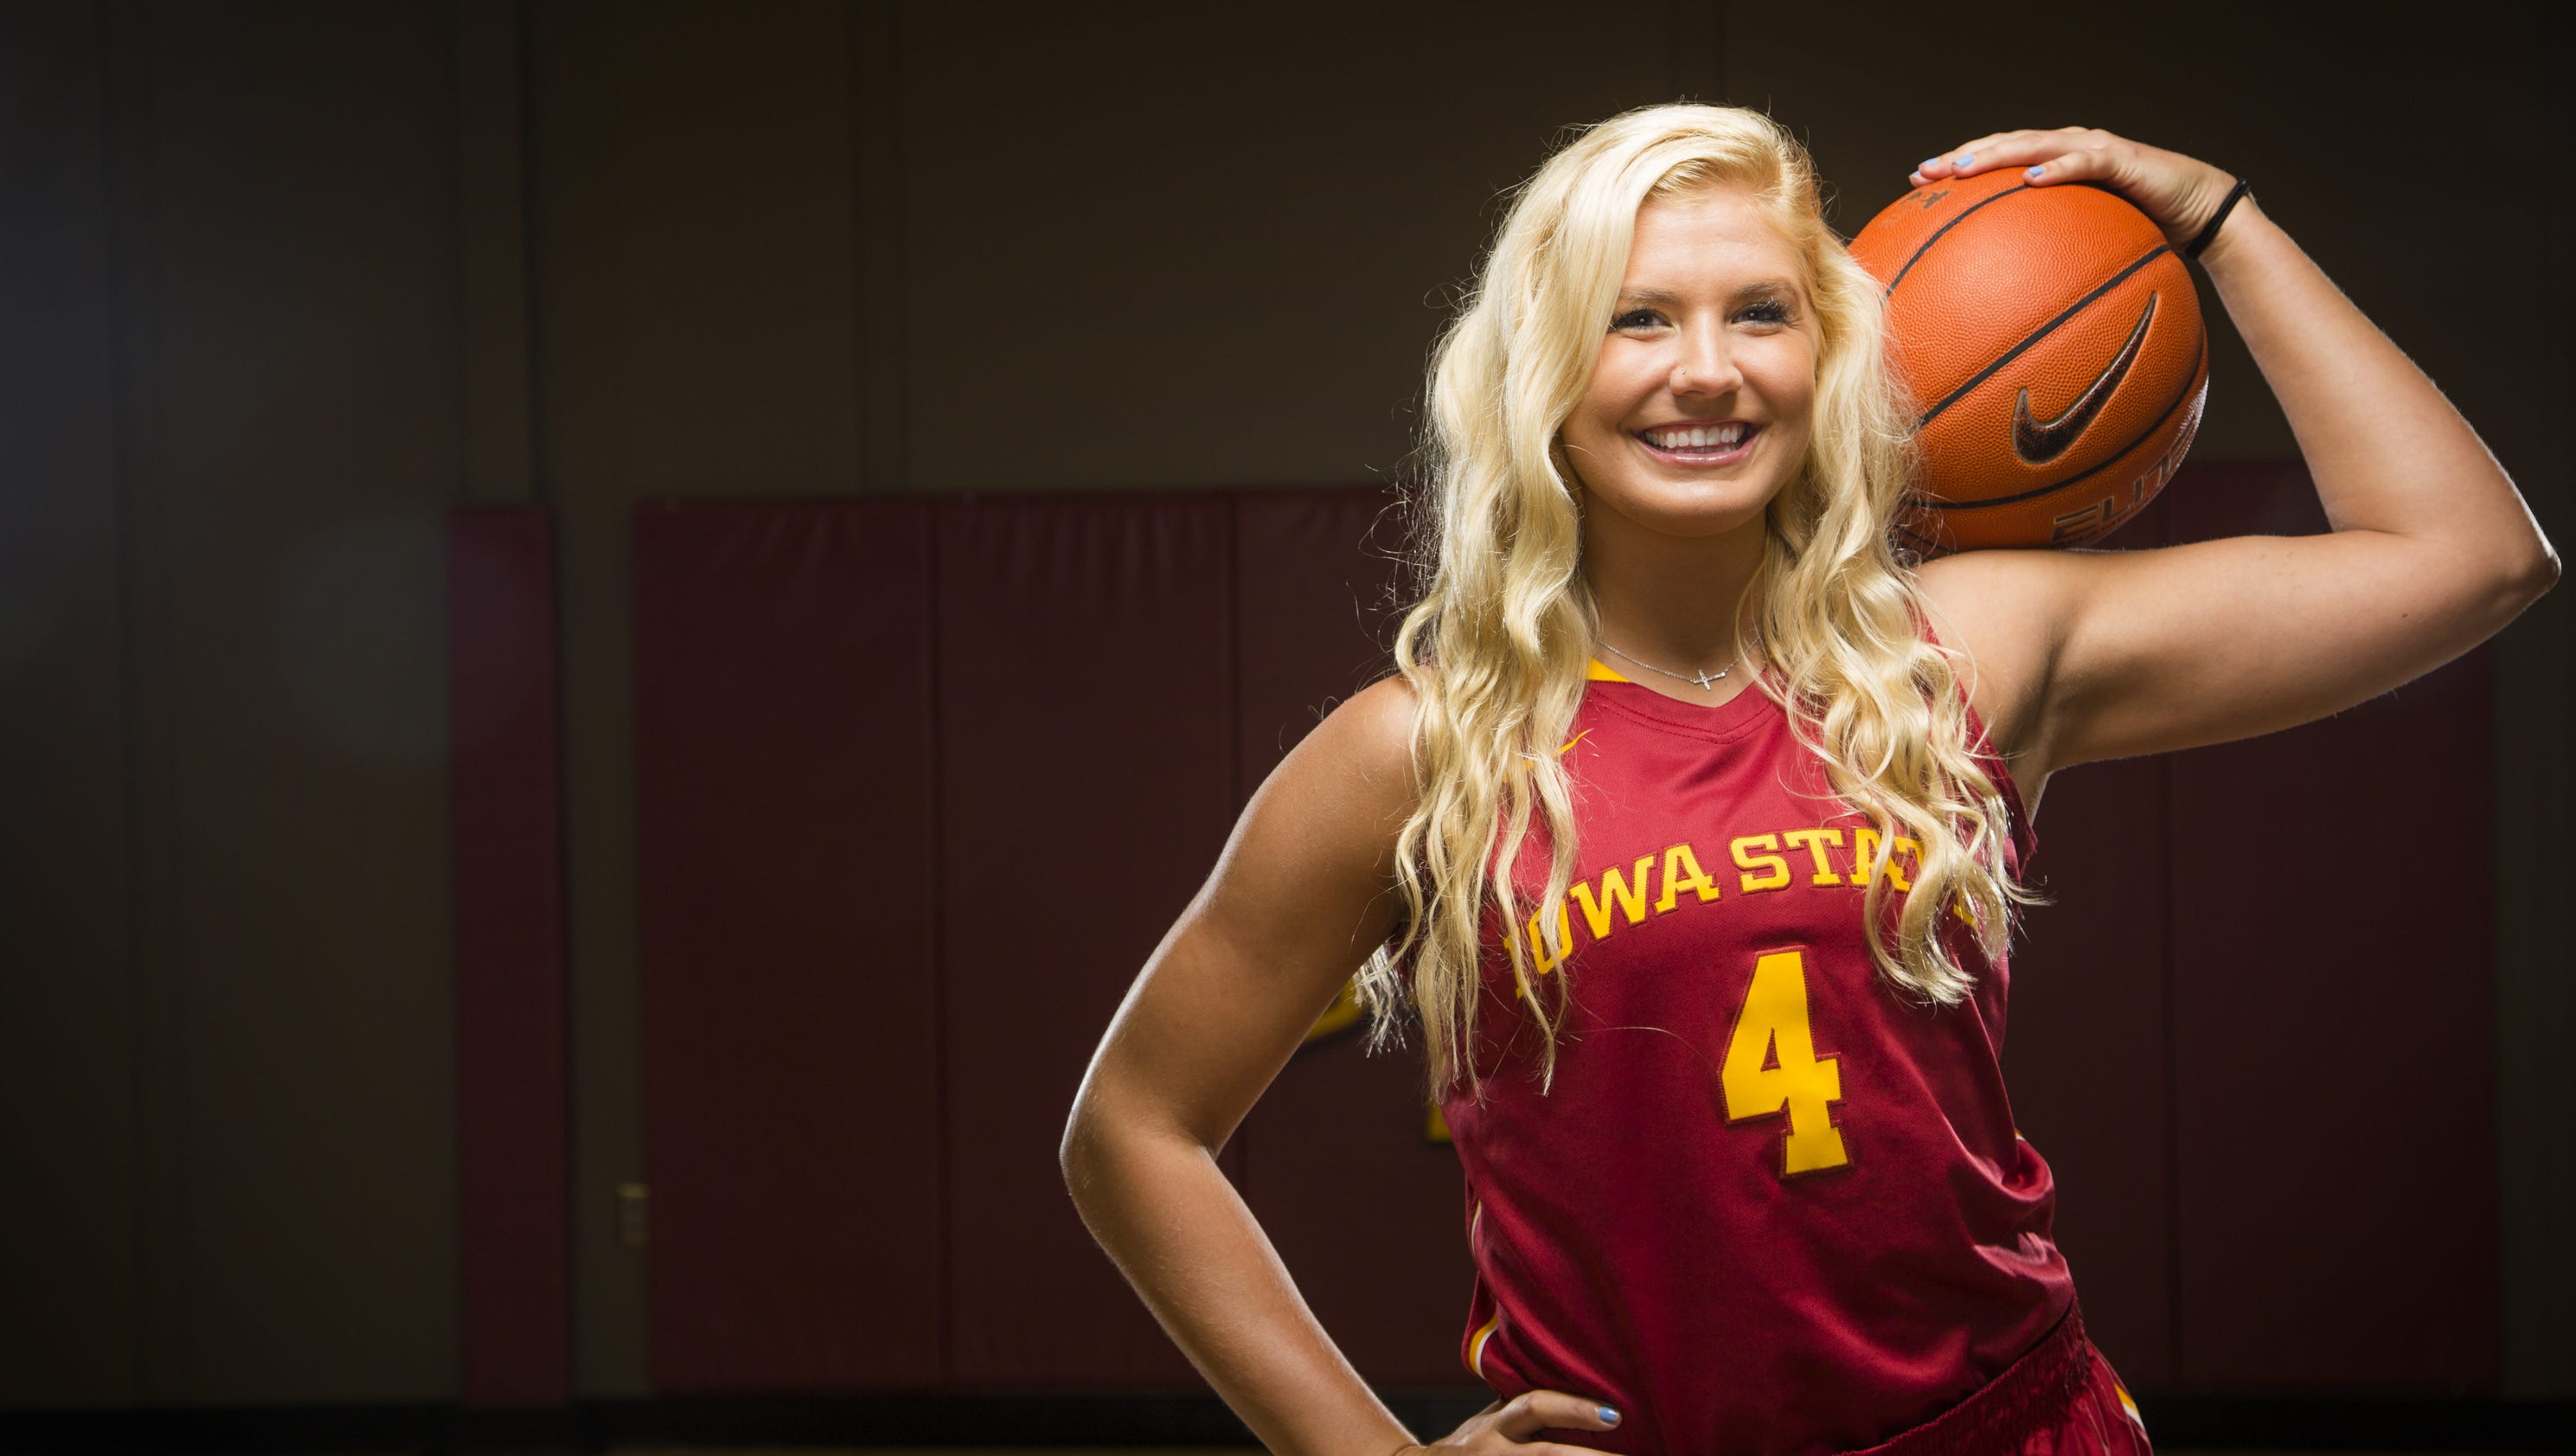 Iowa State women beat Kansas, pick up first Big 12 win